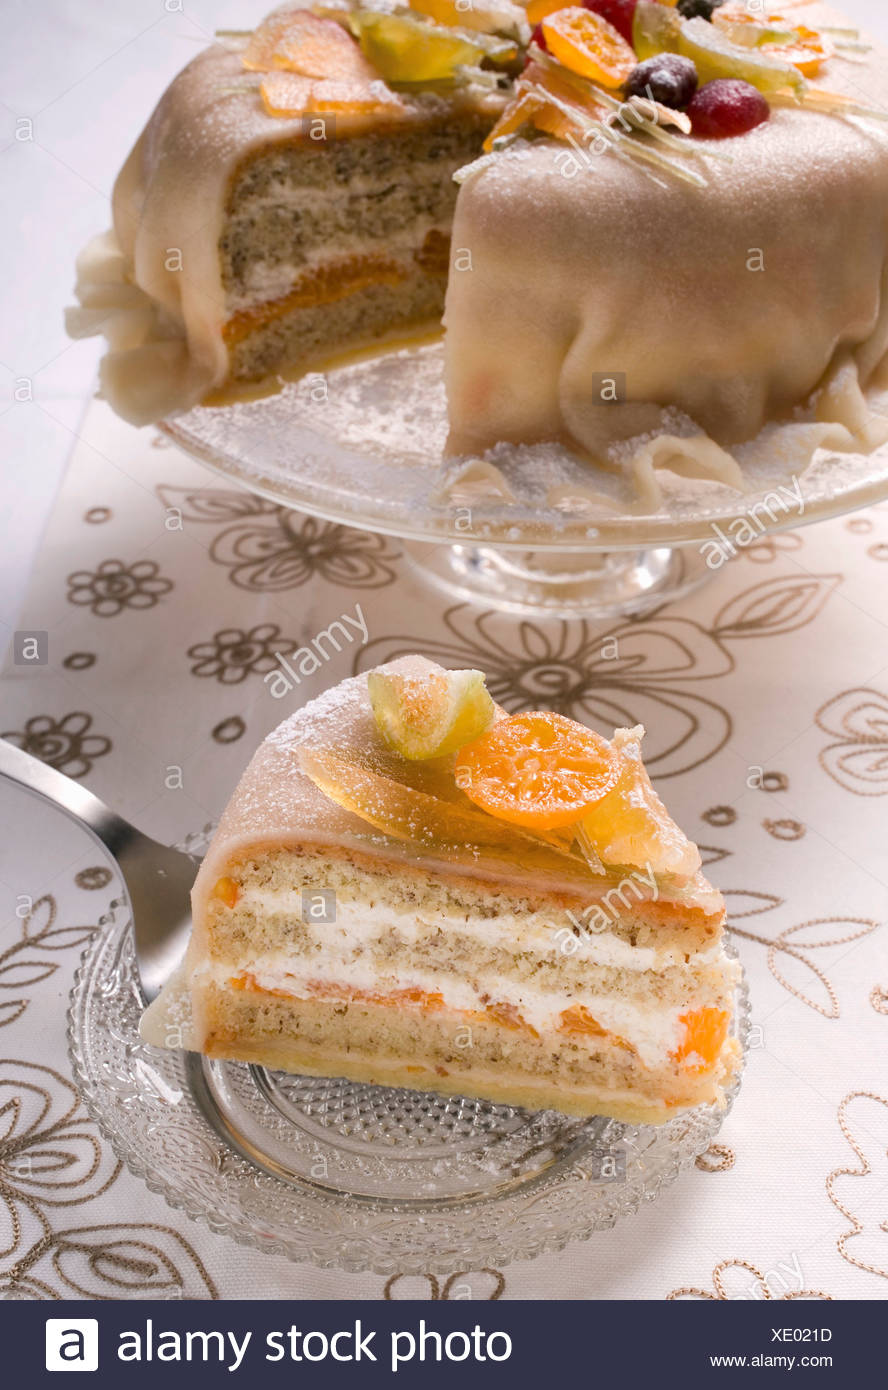 Marzipan Covered Fruit Cake